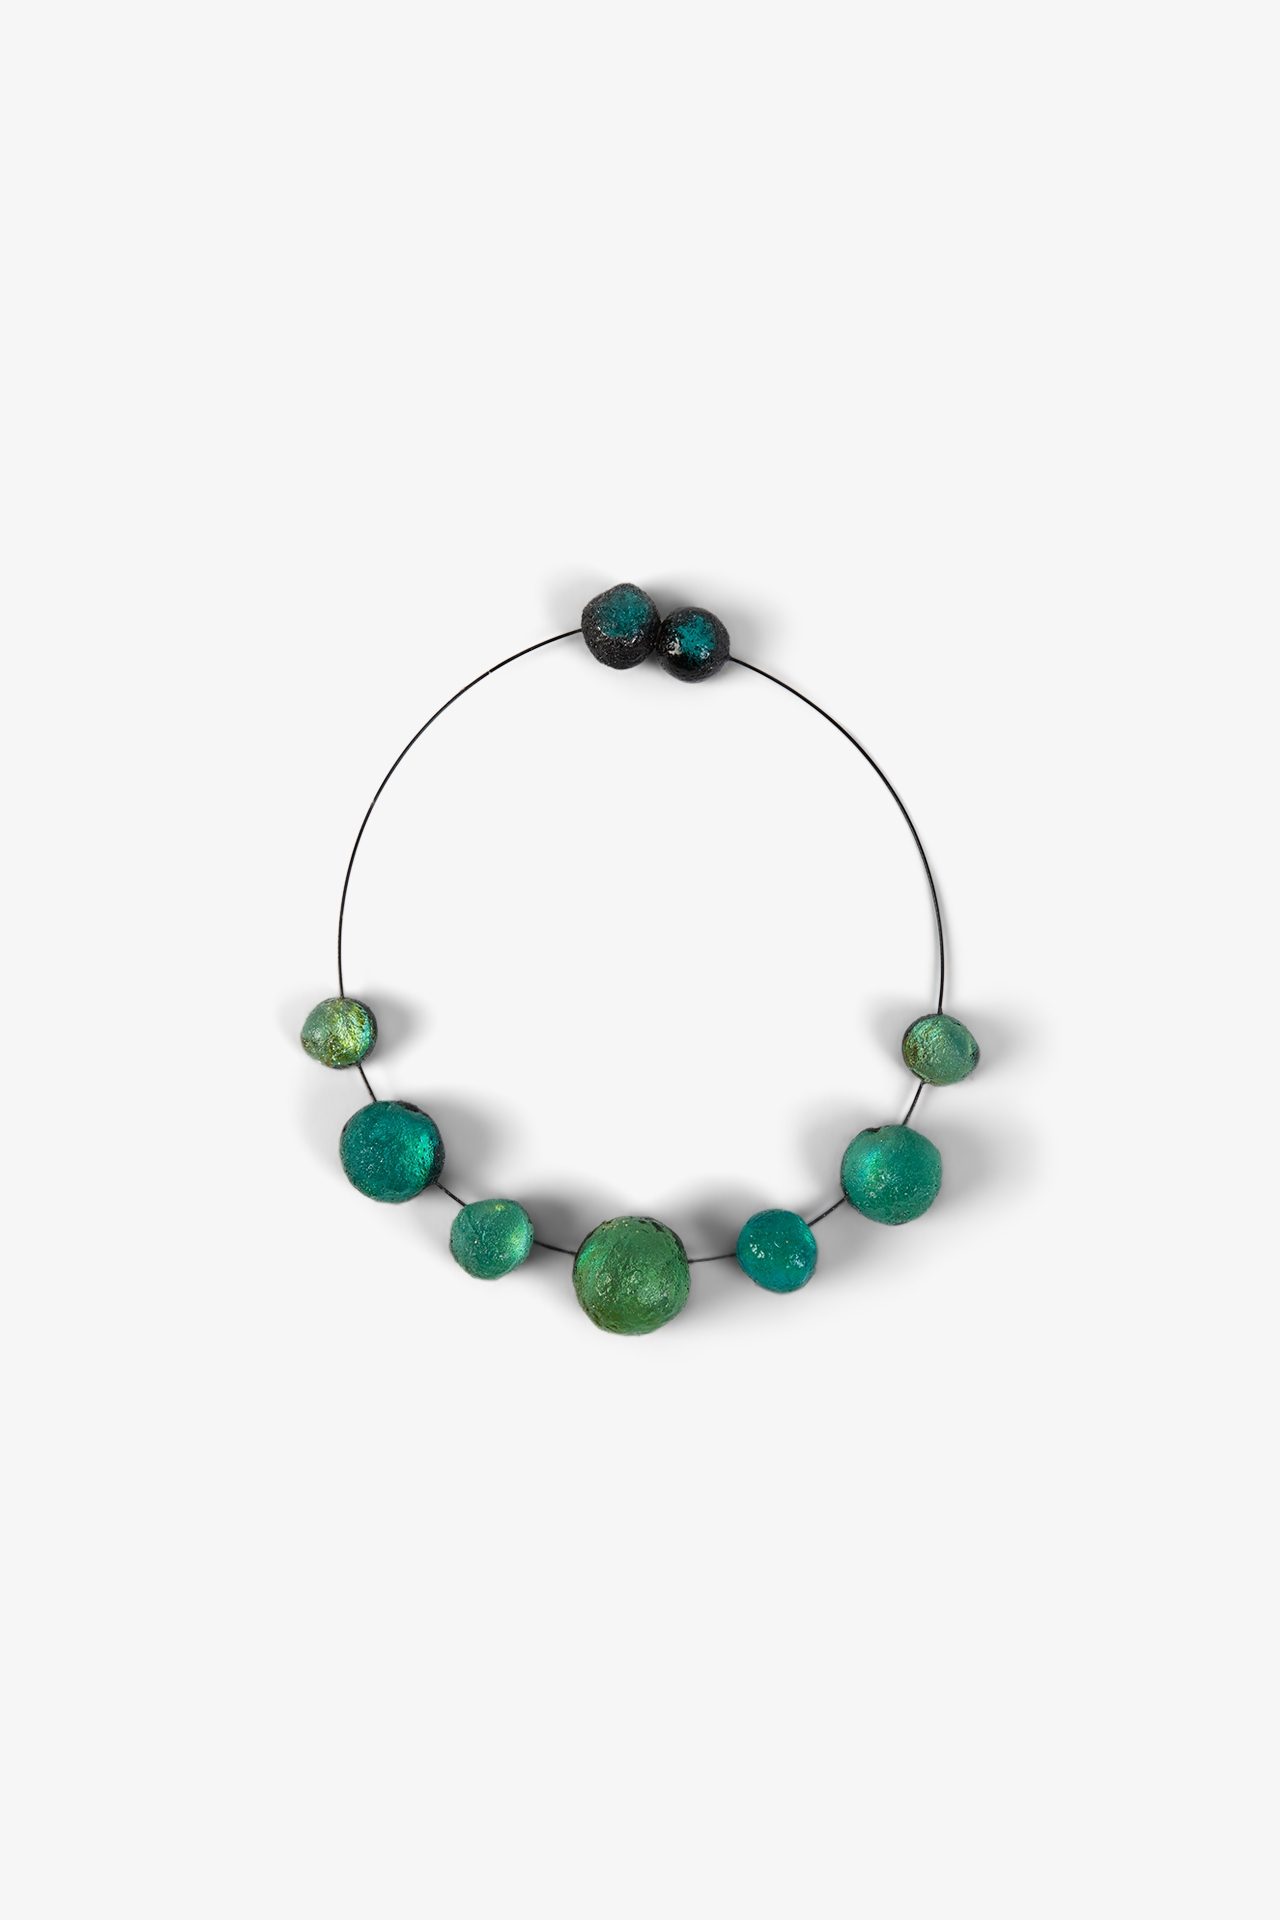 Collier 7 Boules - Marianne Olry